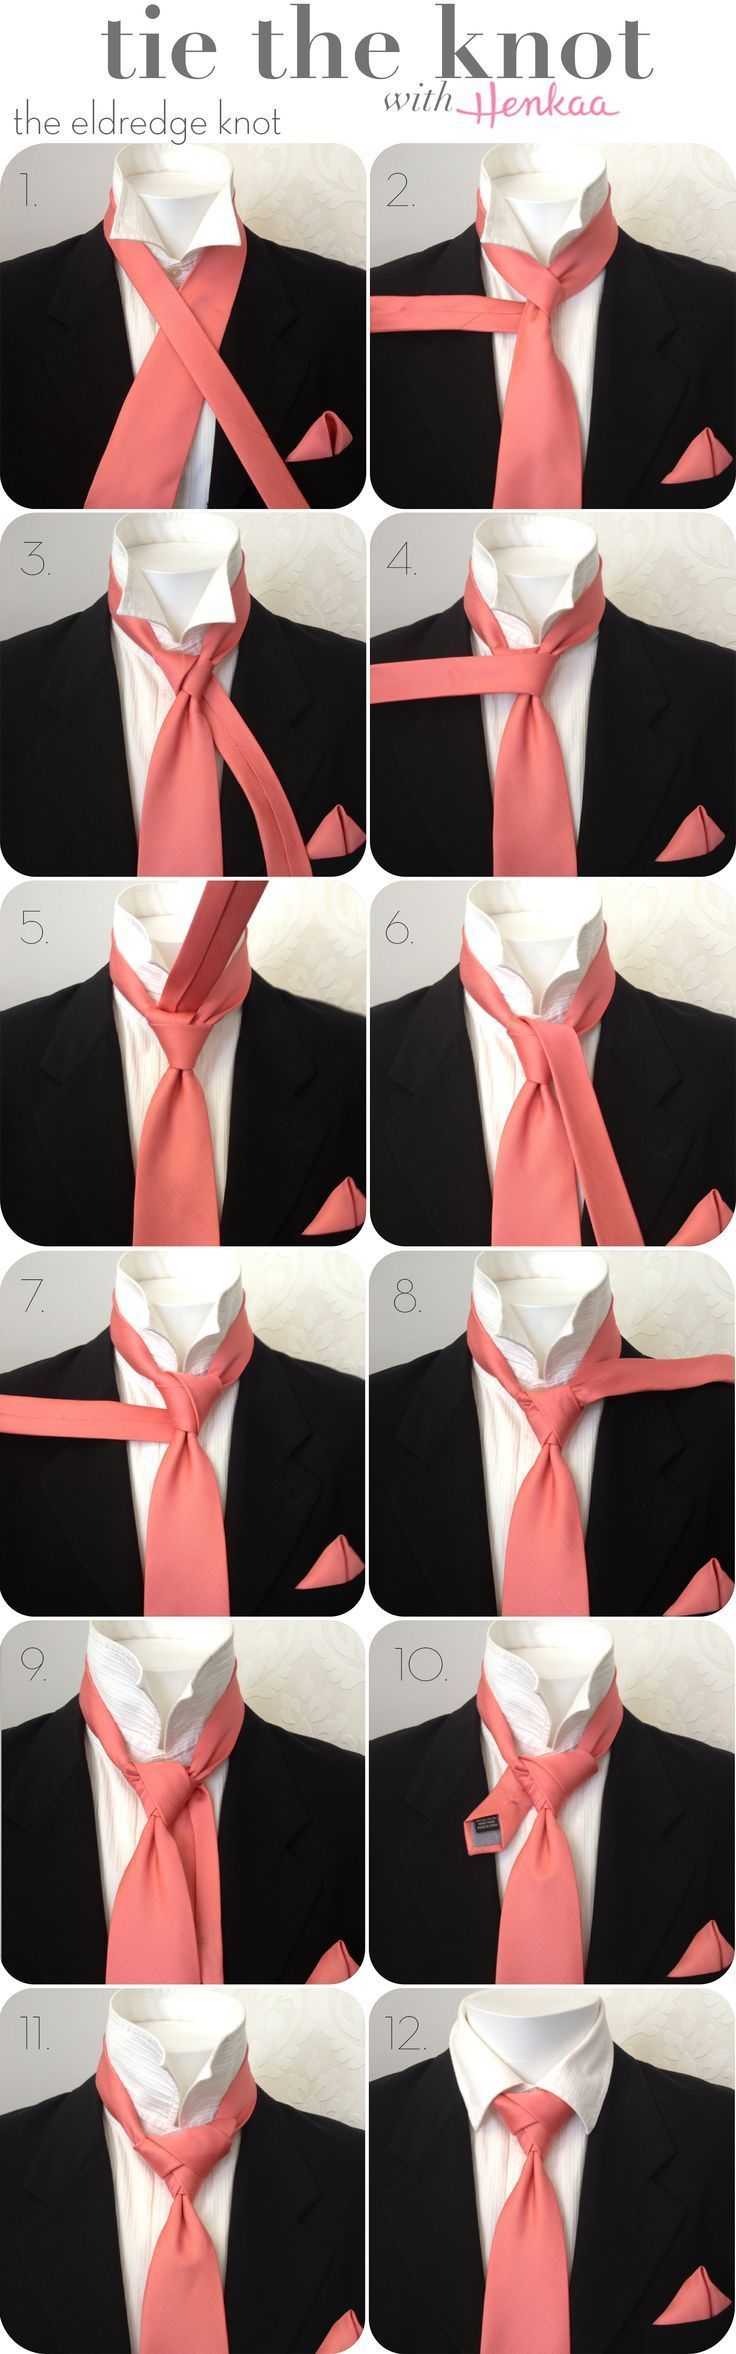 One of the many ways I've found to tie this knot, and I actually prefer this to my usual method